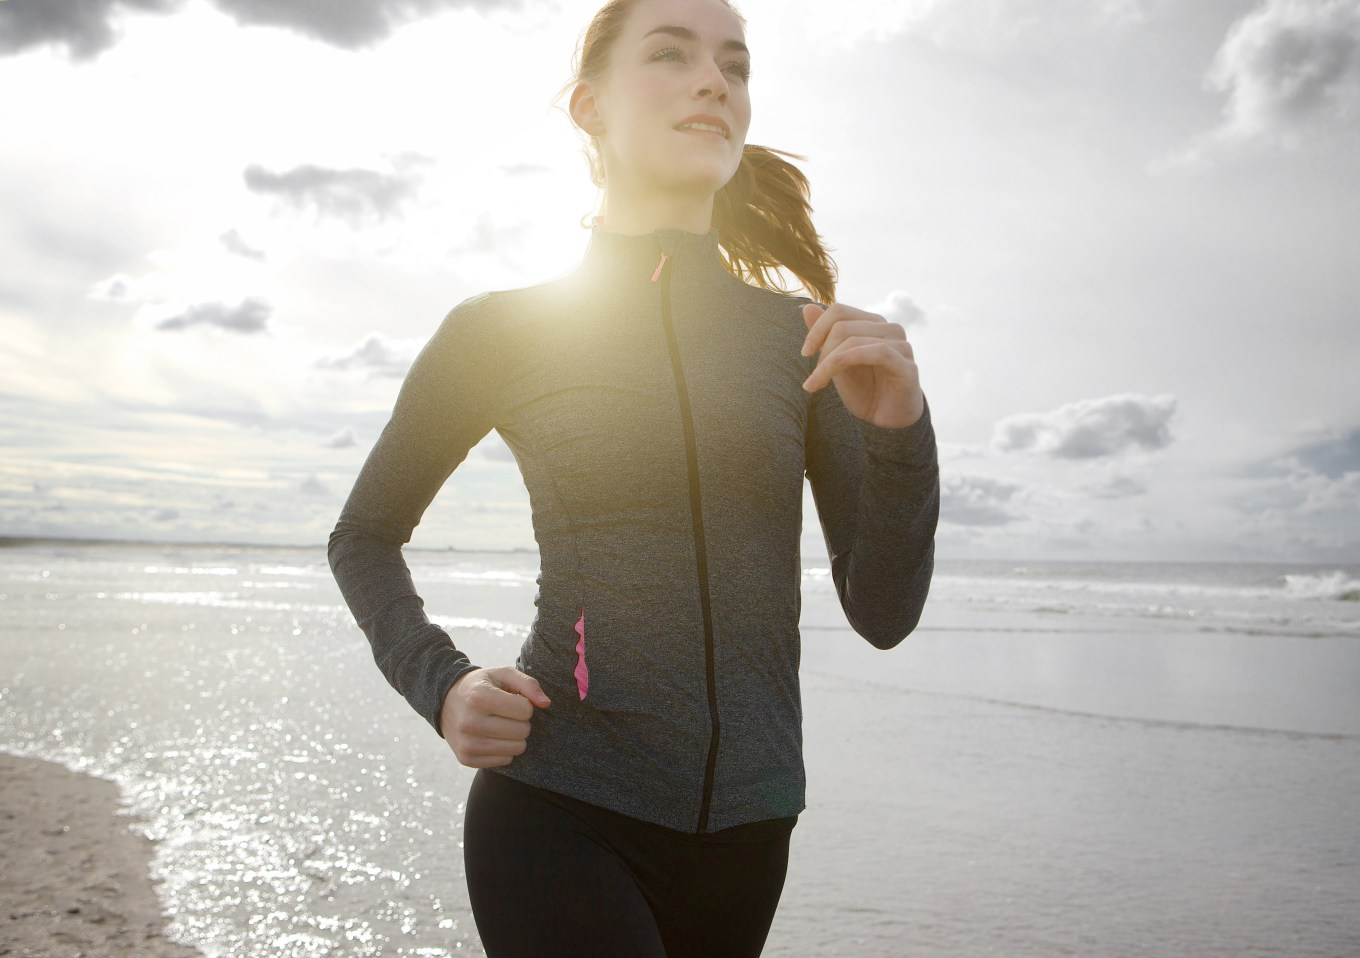 Woman jogging outdoors by the beach